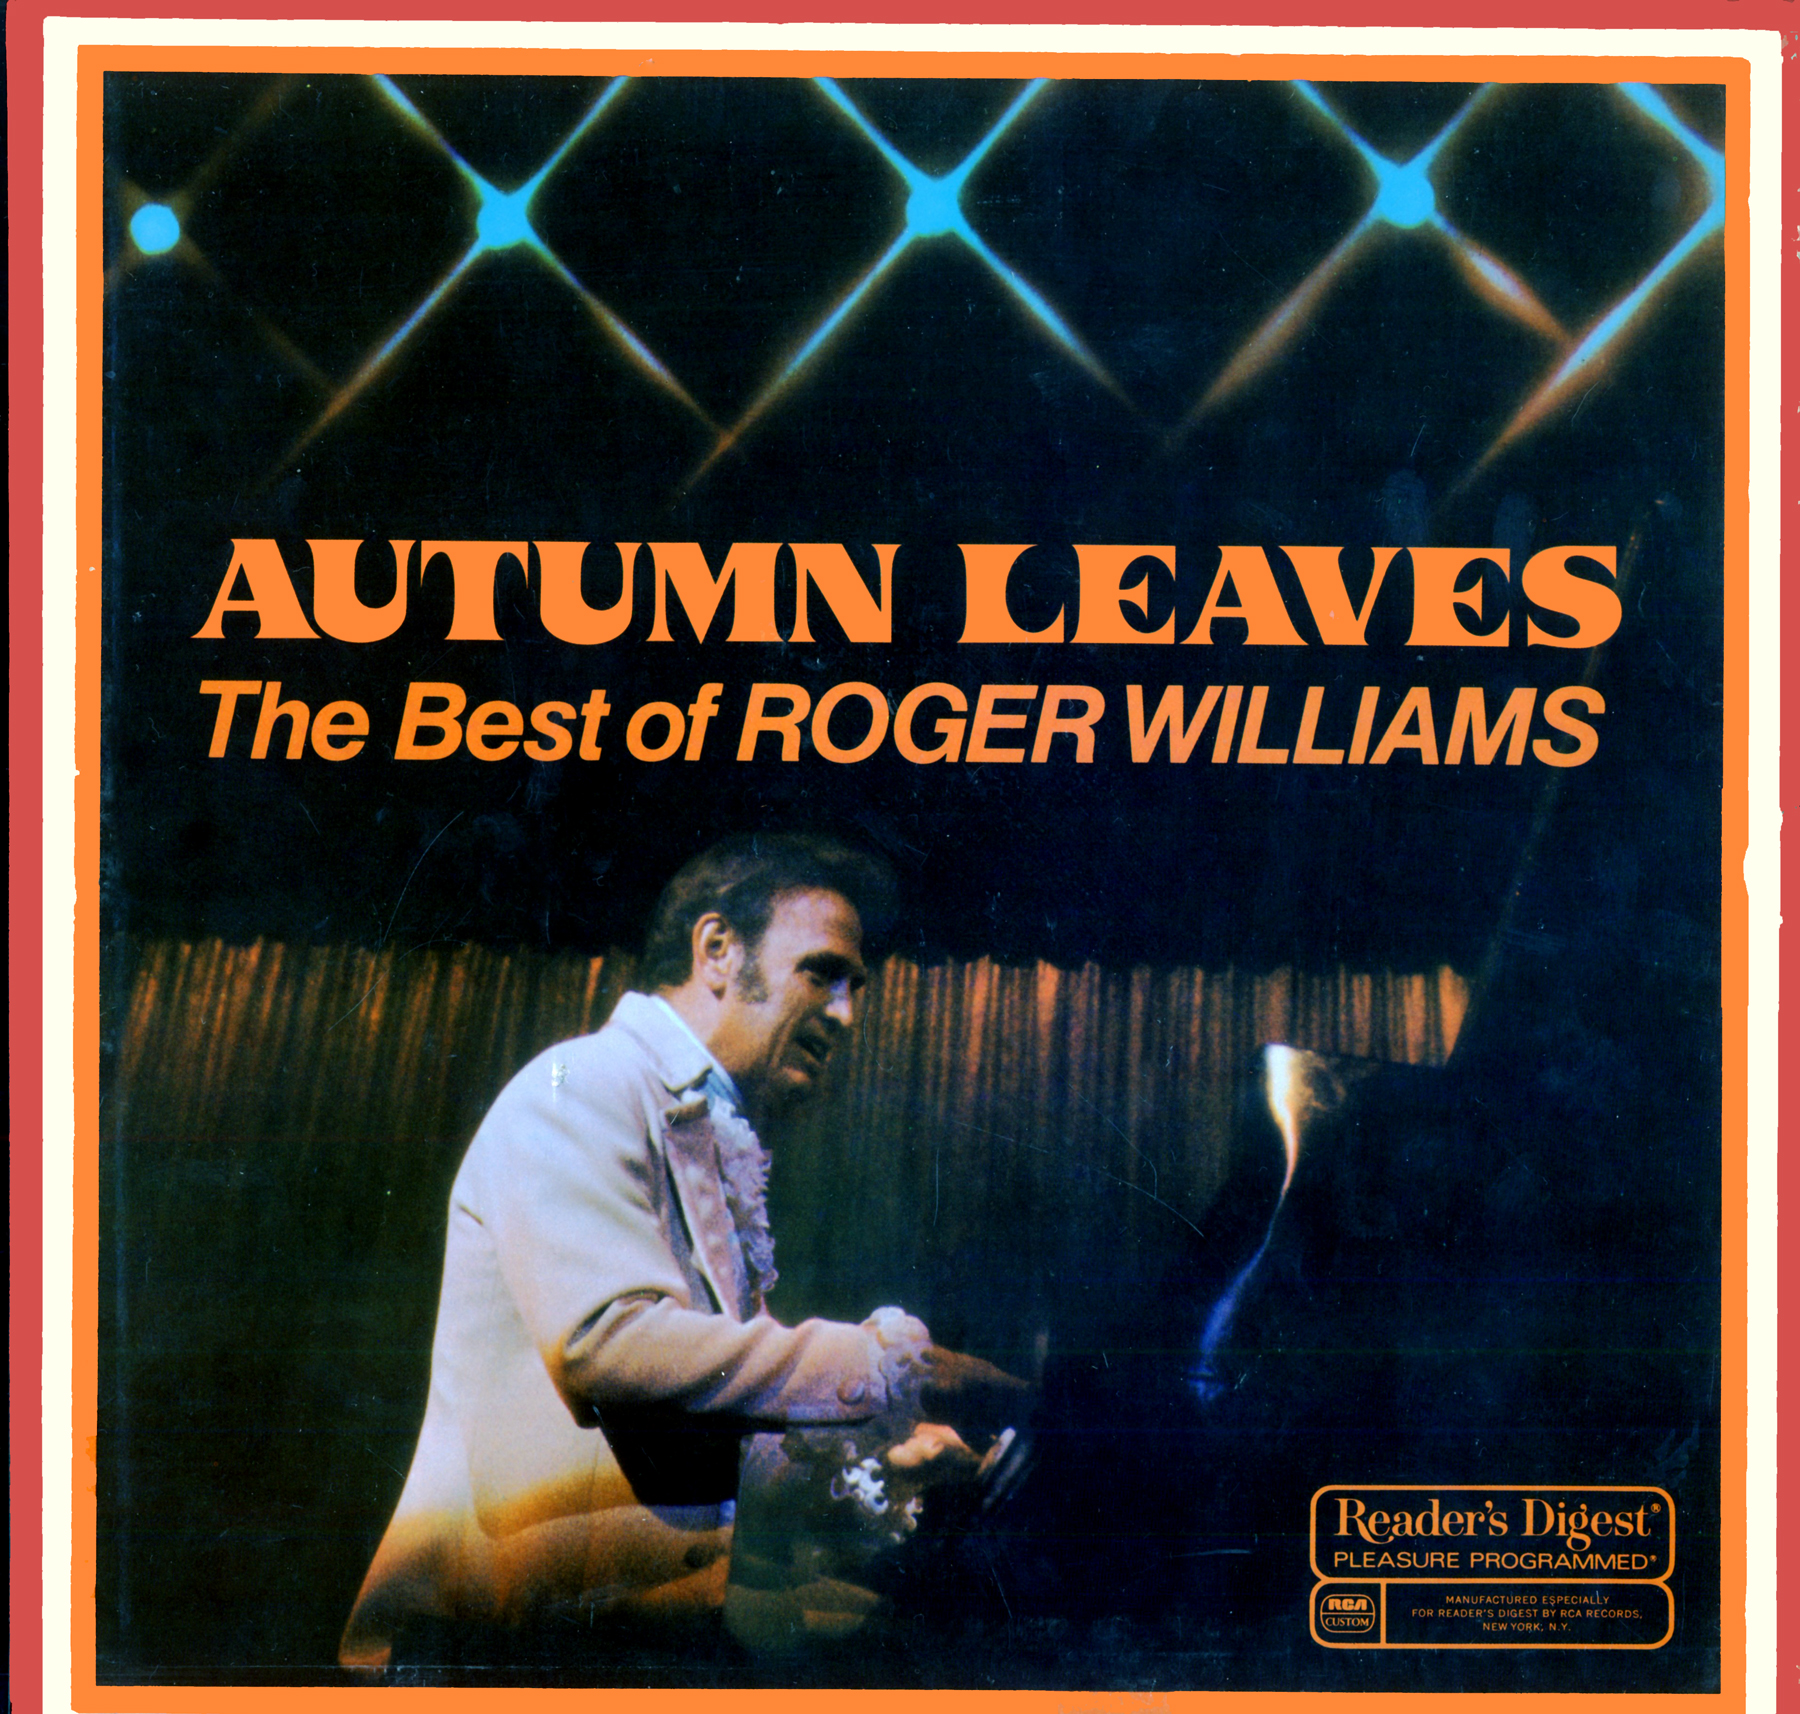 RDA187 - Autumn Leaves - The Best of Roger Williams on CD